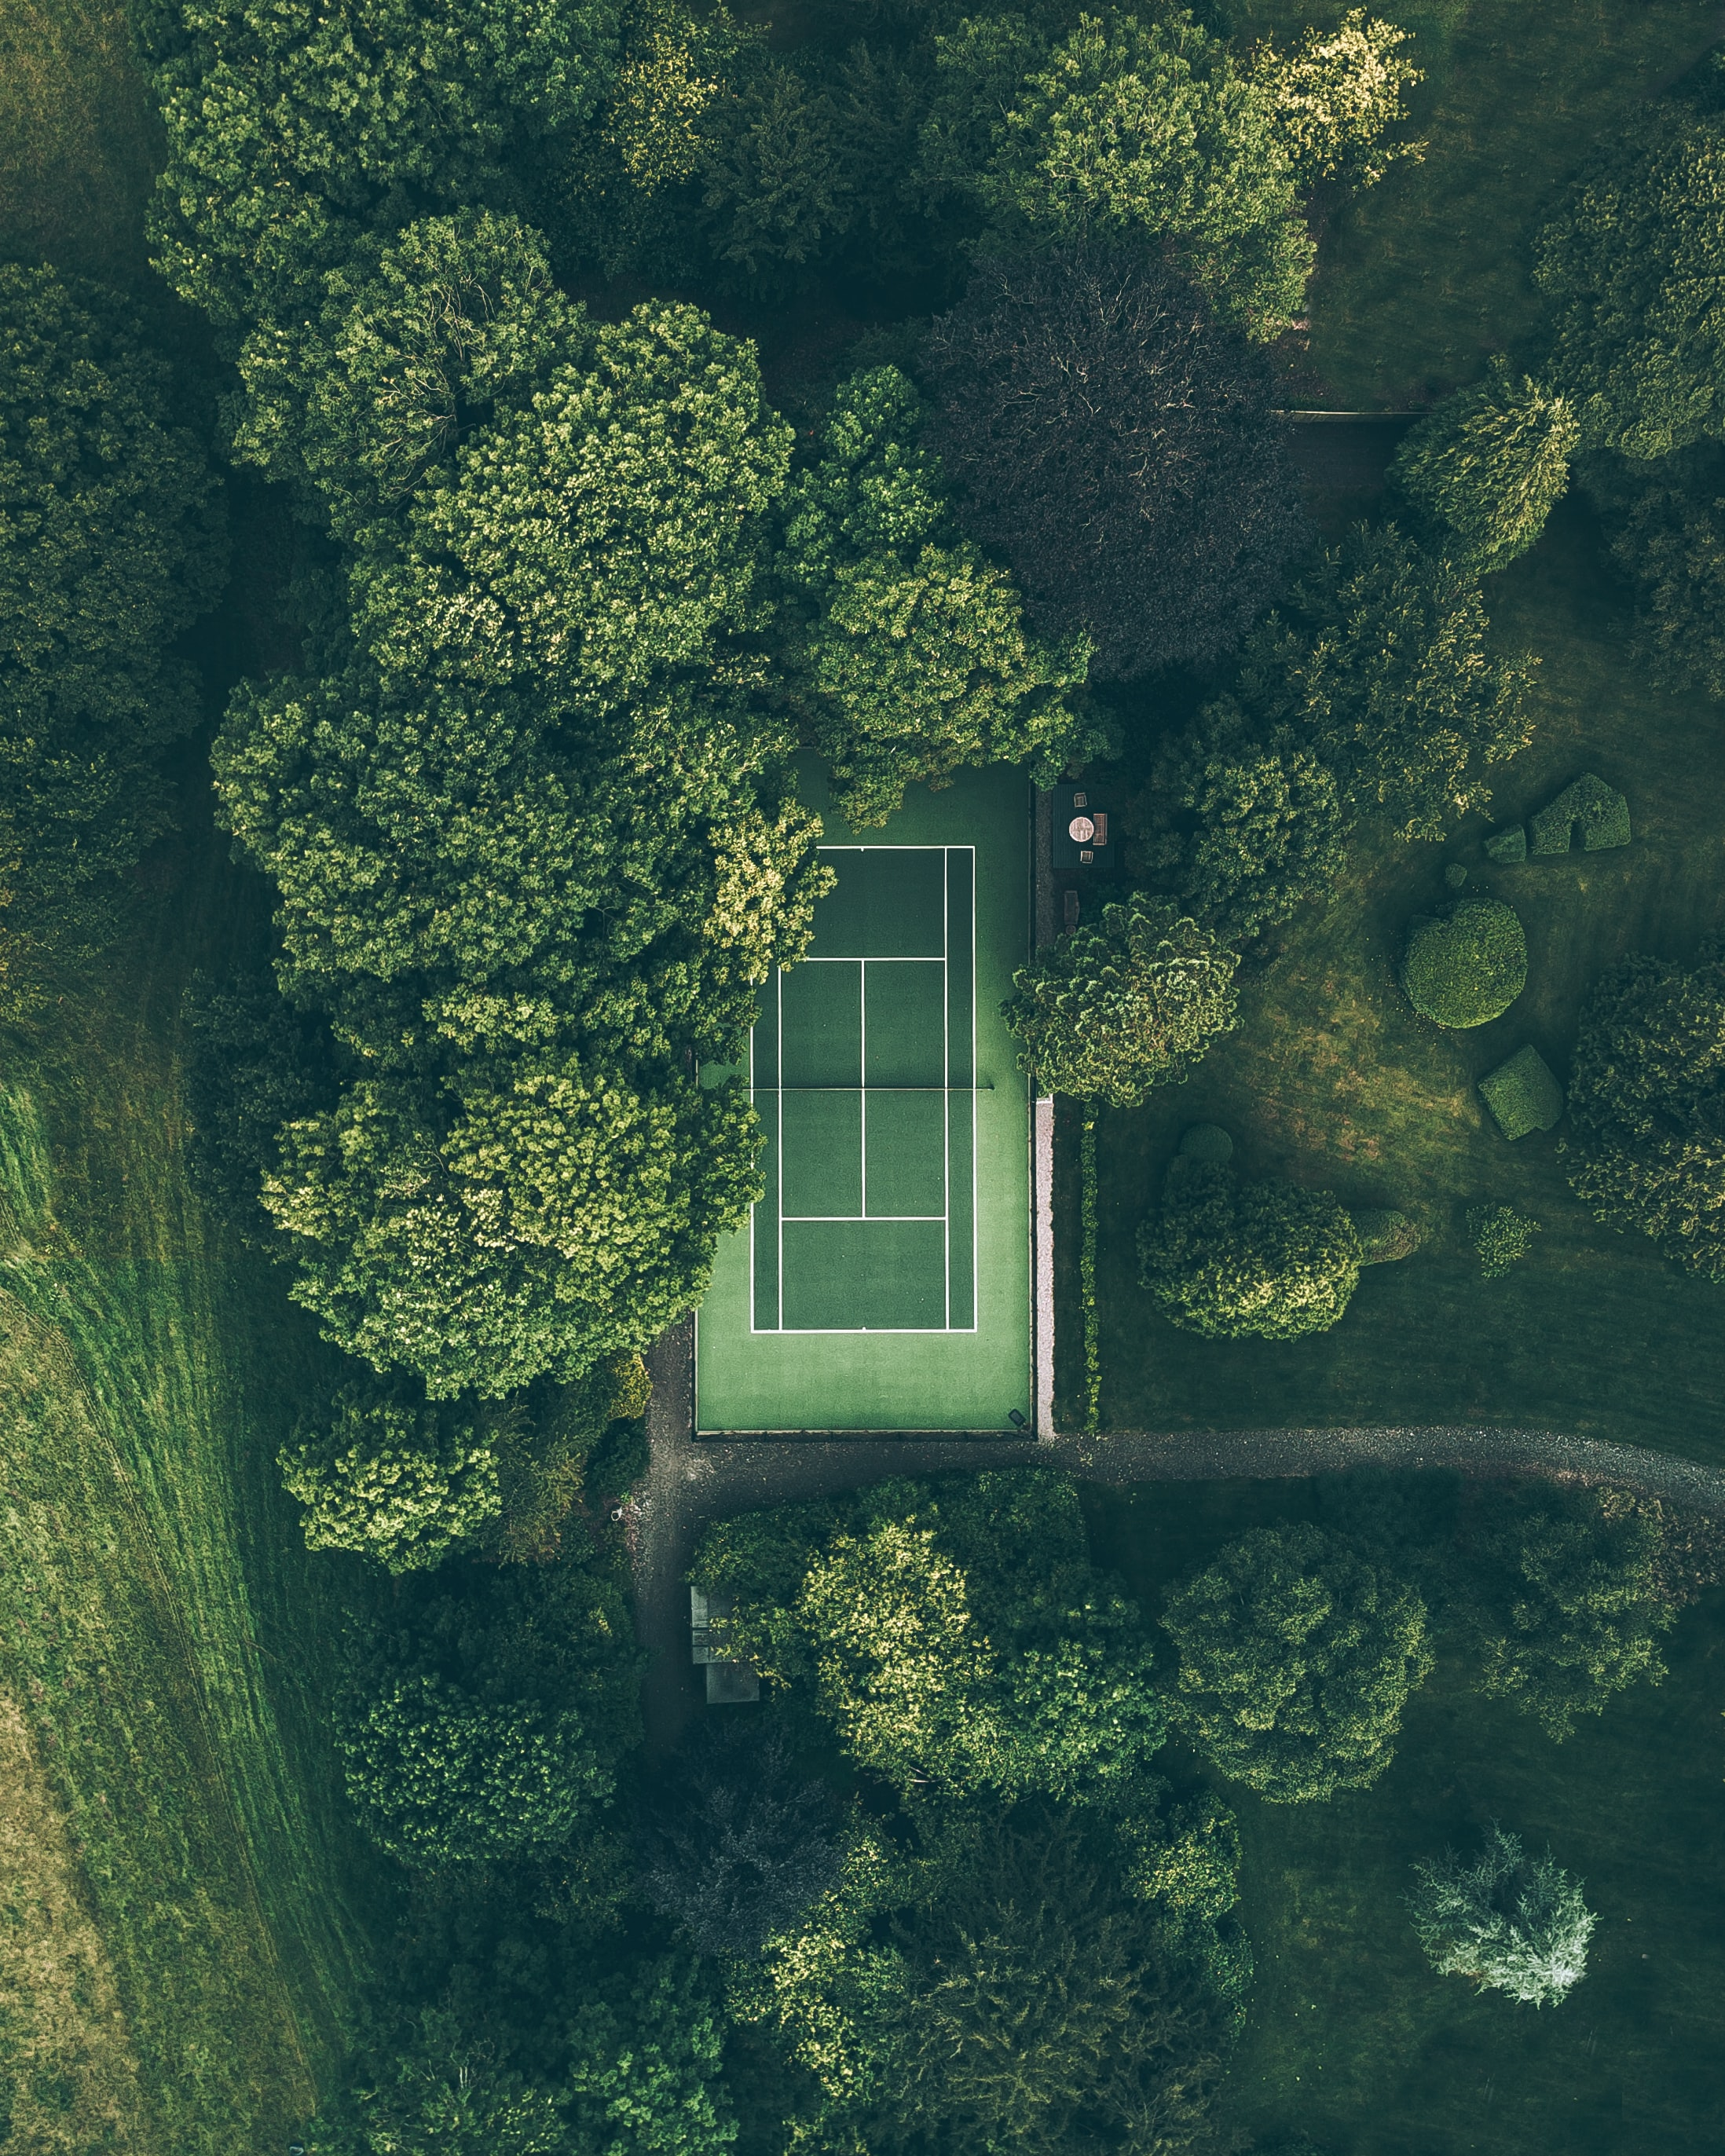 aerial photo of tennis court surrounded with trees